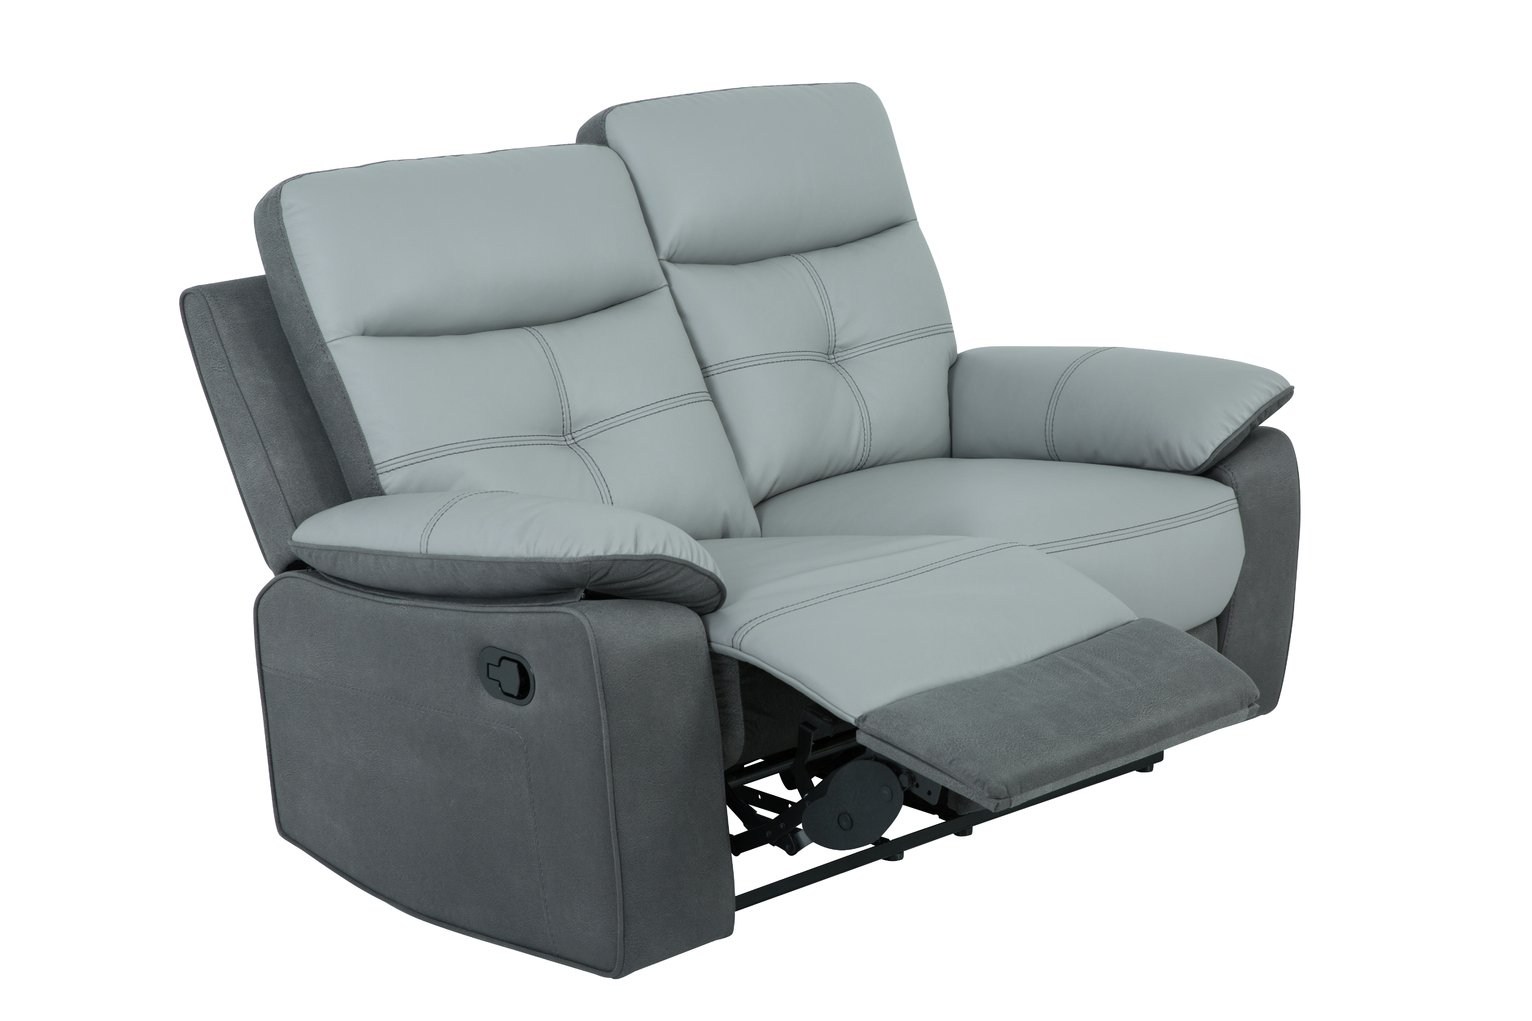 Argos Home Charles 2 Seater Leather Mix Recliner Sofa - Grey